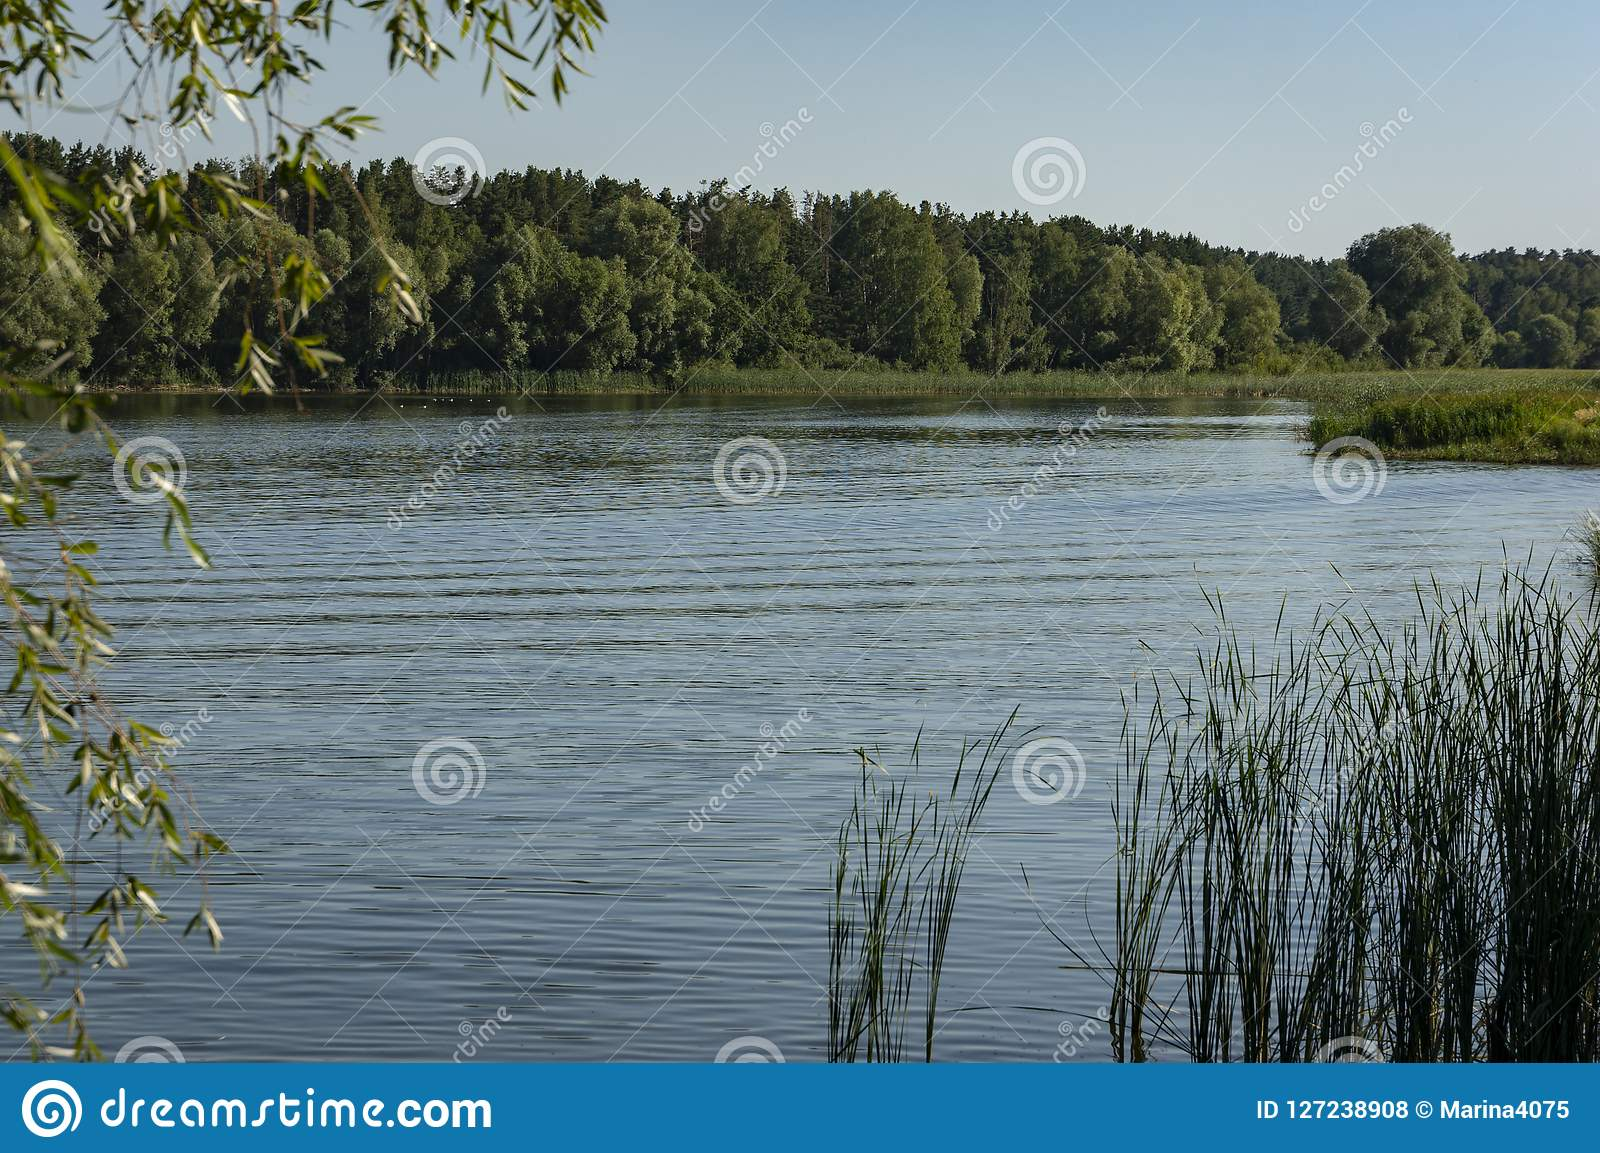 The river flows along the forested coasts. The Bay of the Volga River near the city of Ulyanovsk.